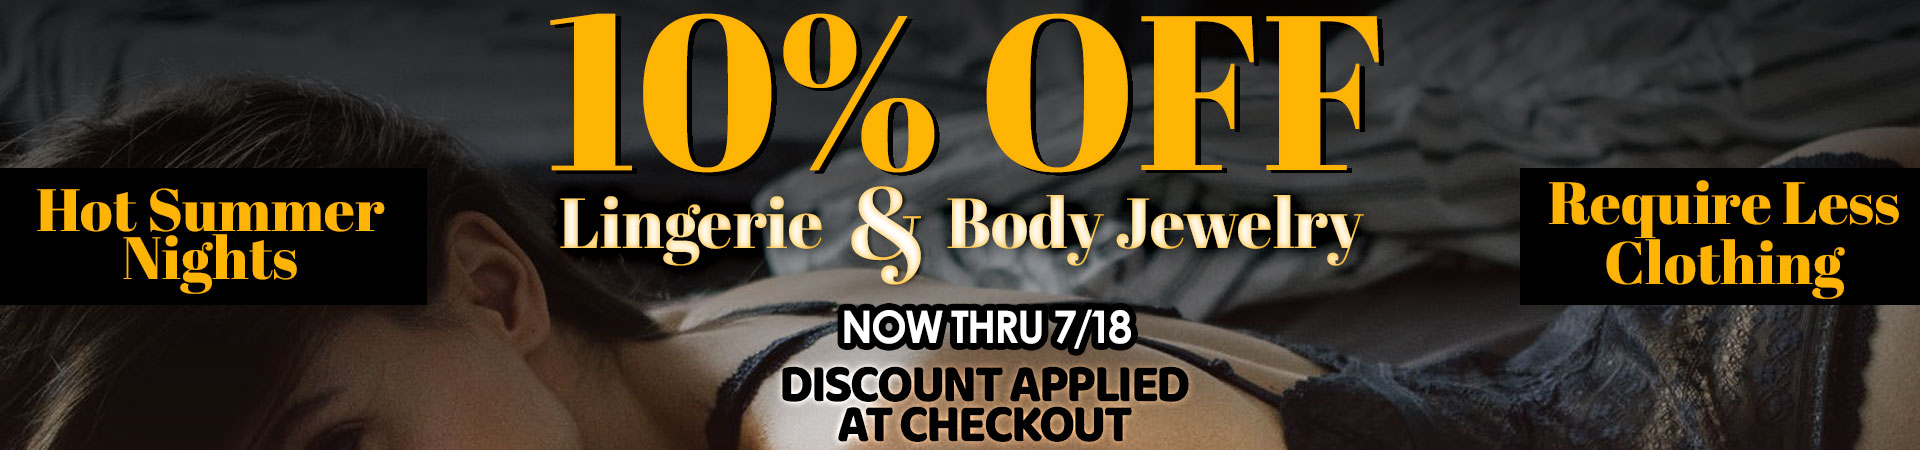 10% Off Lingerie & Body Jewelry - Now Thru 7/18 - Discount Applied At Checkout